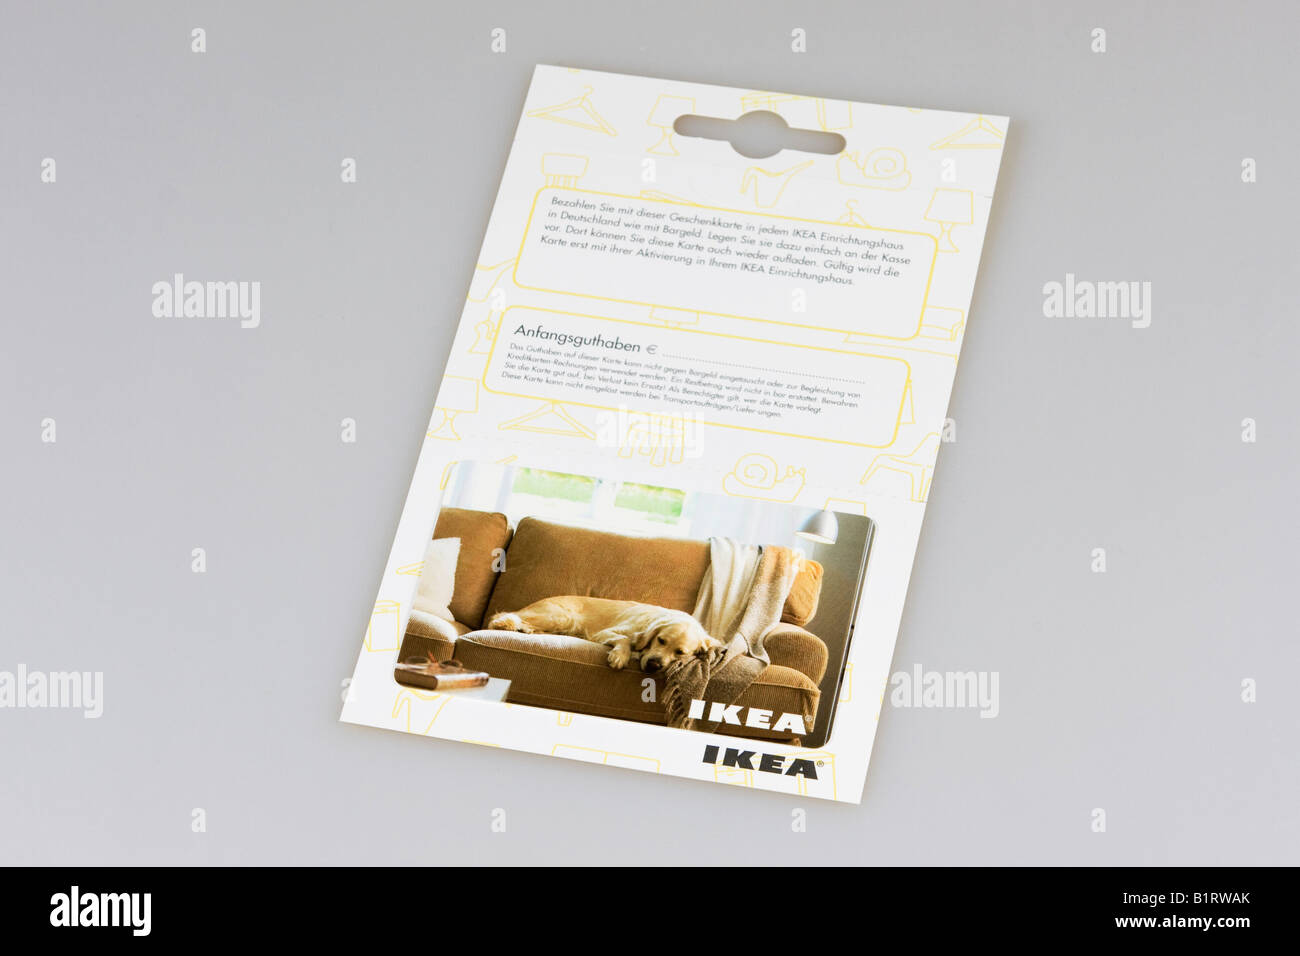 Ikea Advertising Stock Photos & Ikea Advertising Stock Images - Alamy